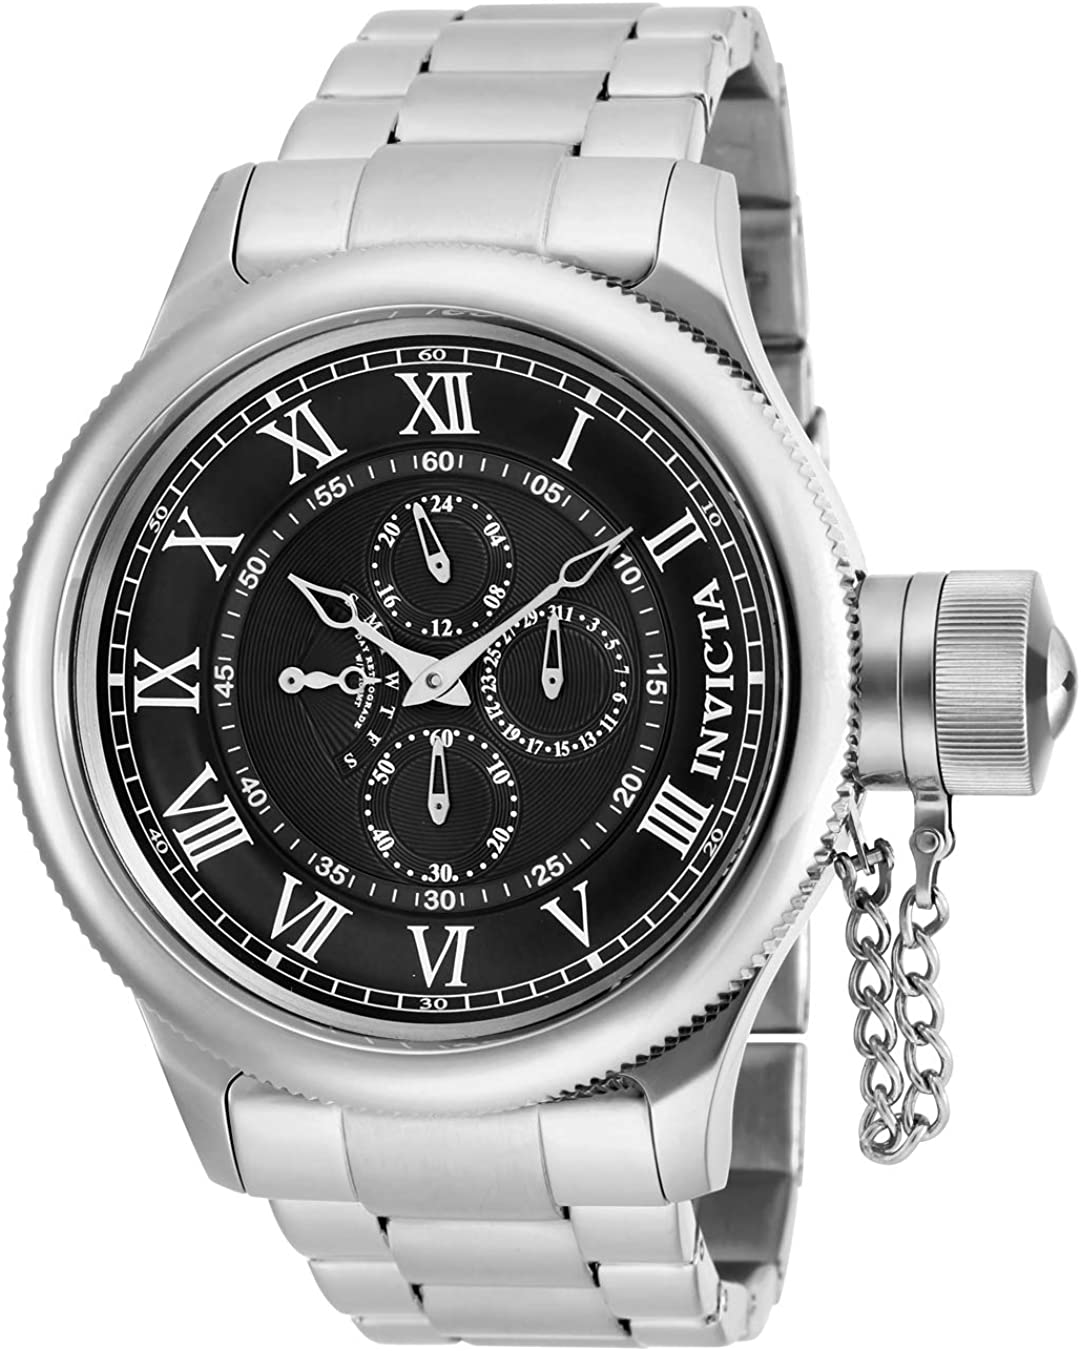 Invicta Men s Russian Diver Quartz Watch with Stainless Steel Strap, Silver, 26 Model 17664